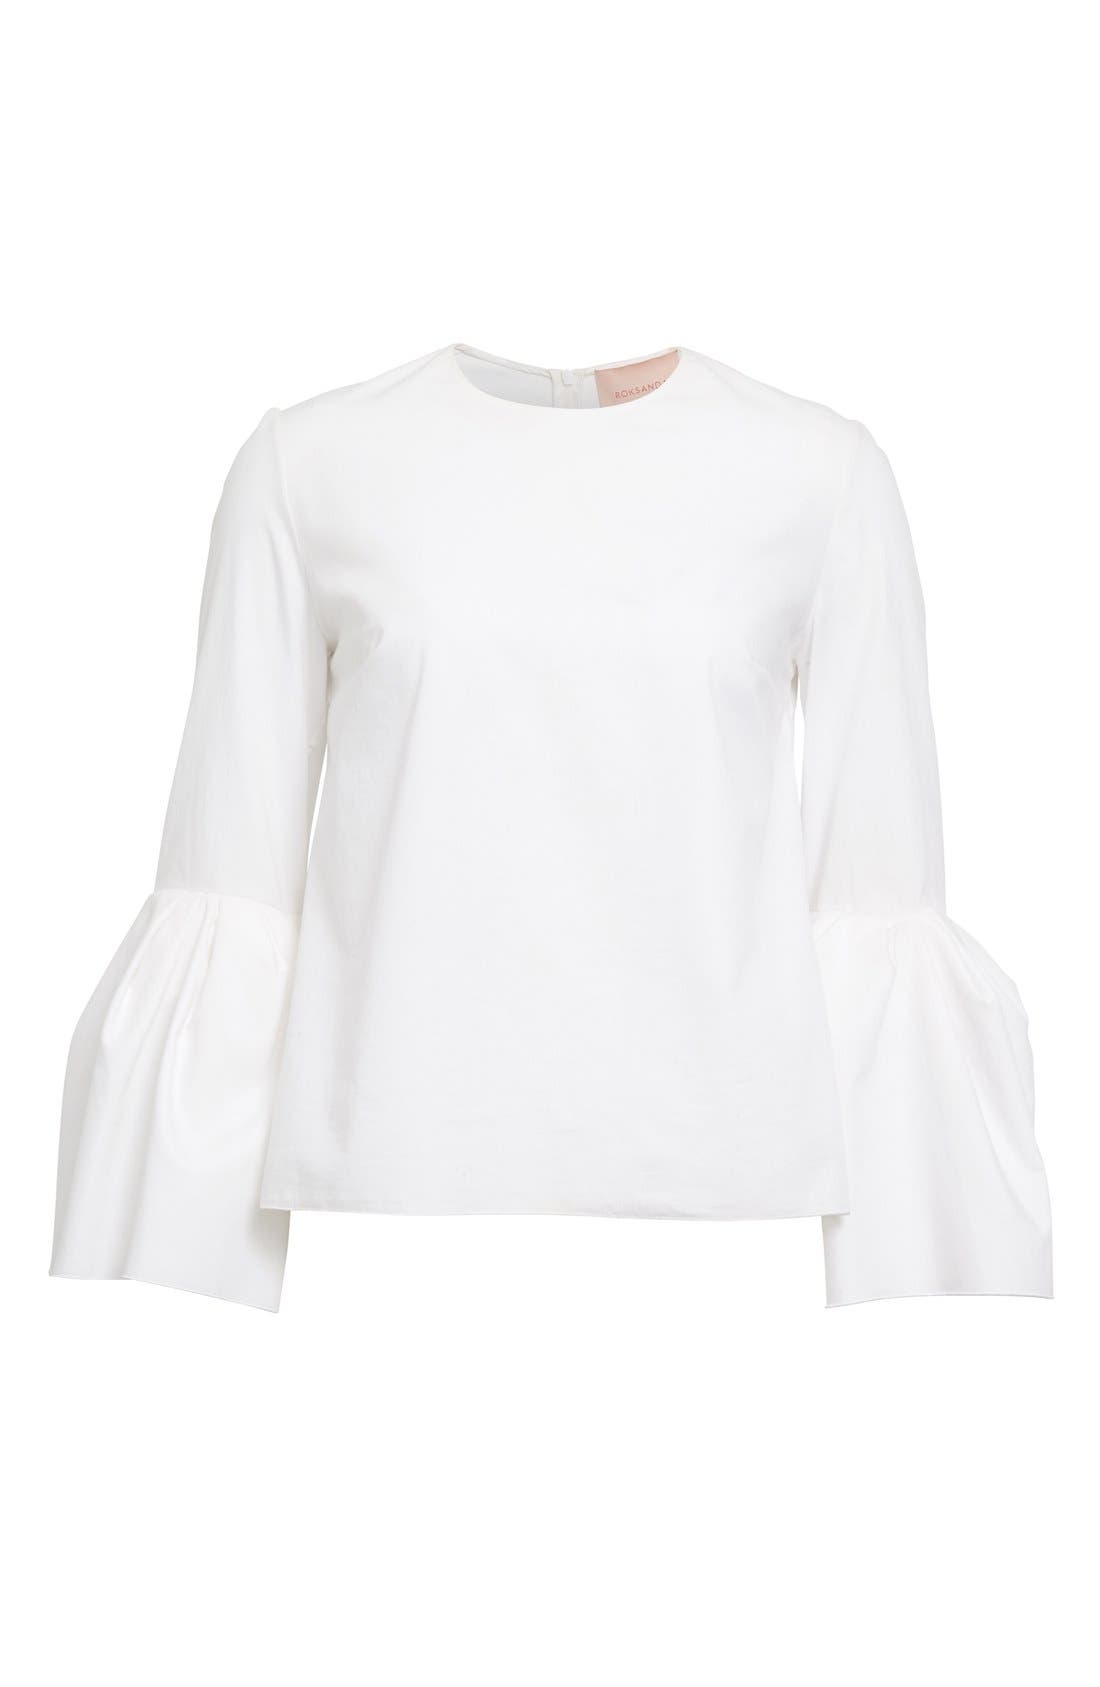 Truffaut Bell Sleeve Top,                             Alternate thumbnail 4, color,                             WHITE